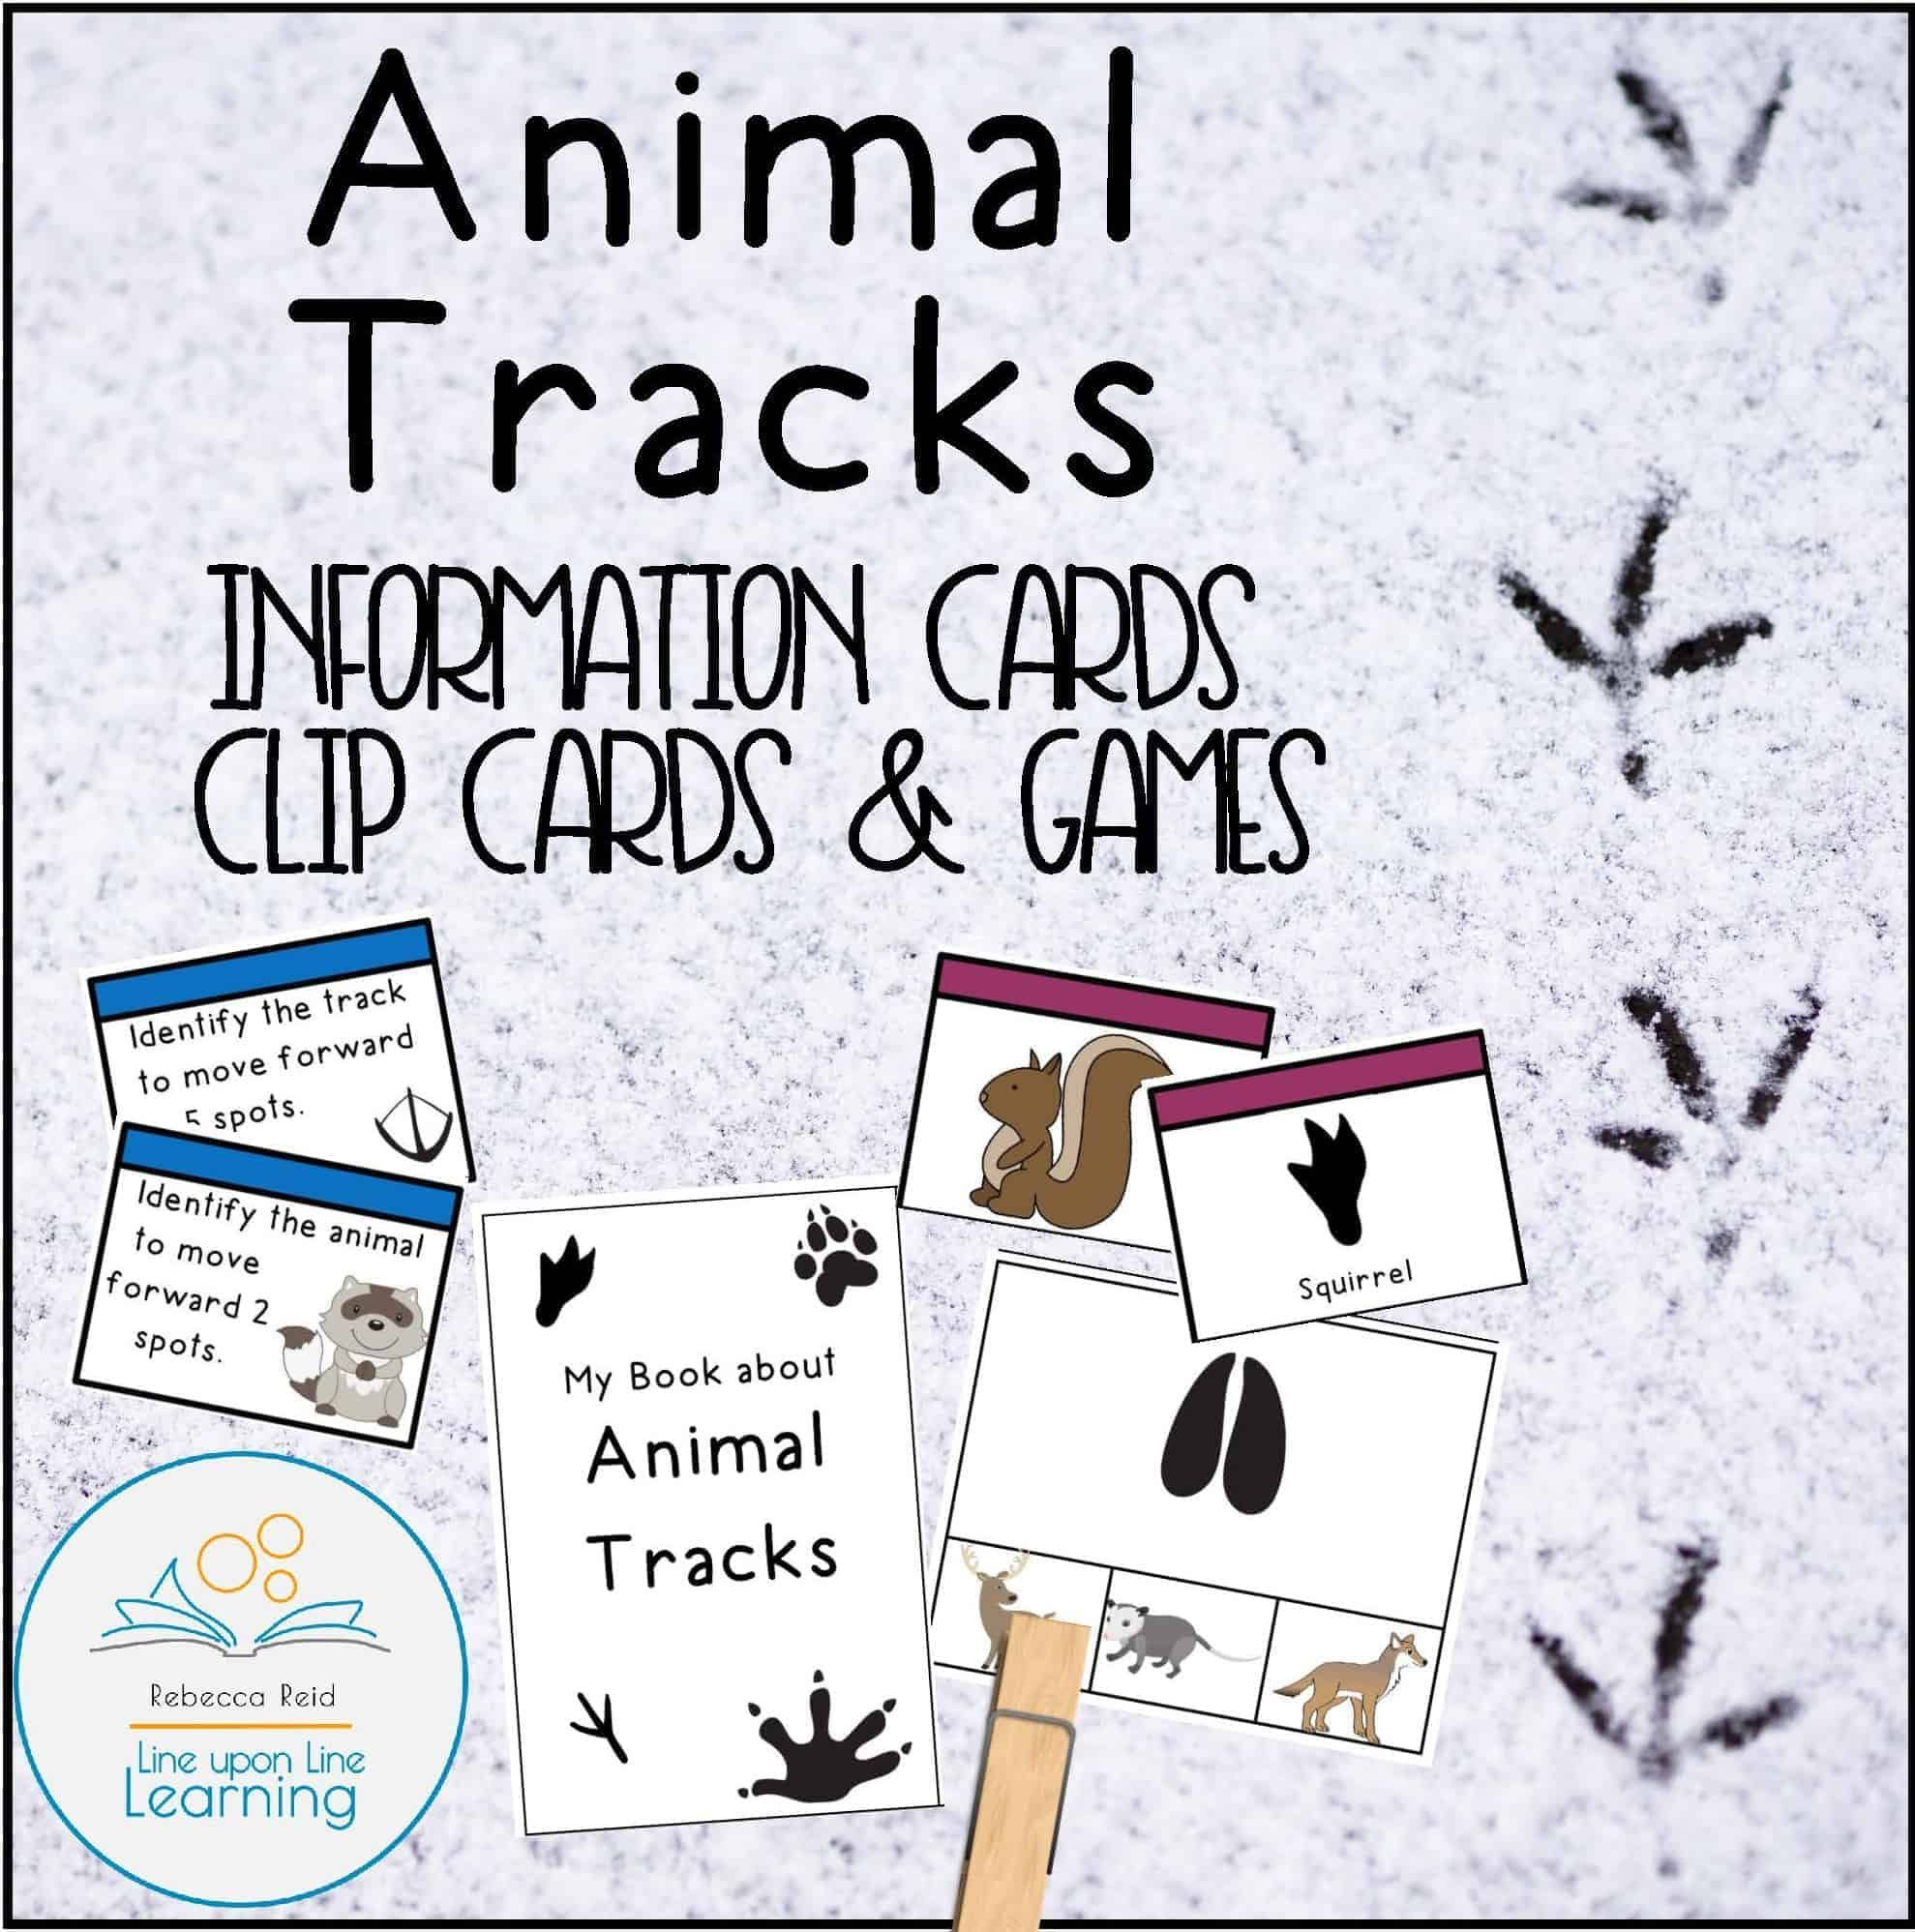 Animal Tracks Information Cards Clip Cards And Games